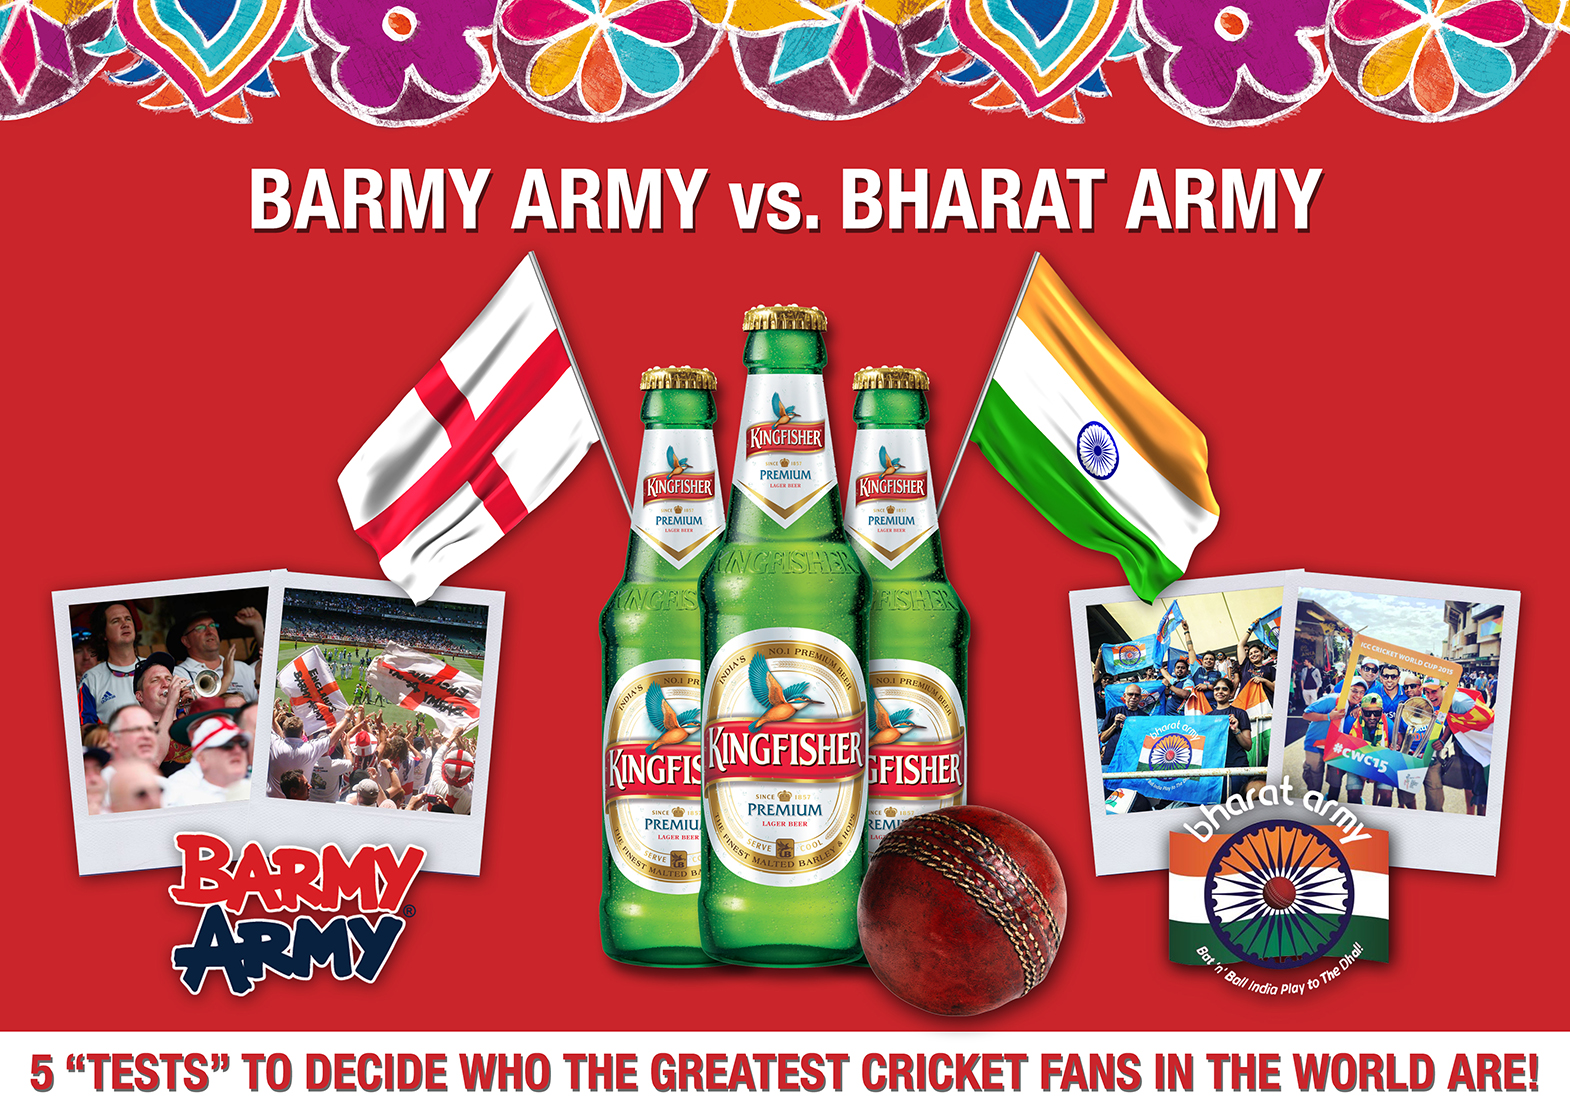 The Barmy Army vs. The Bharat Army